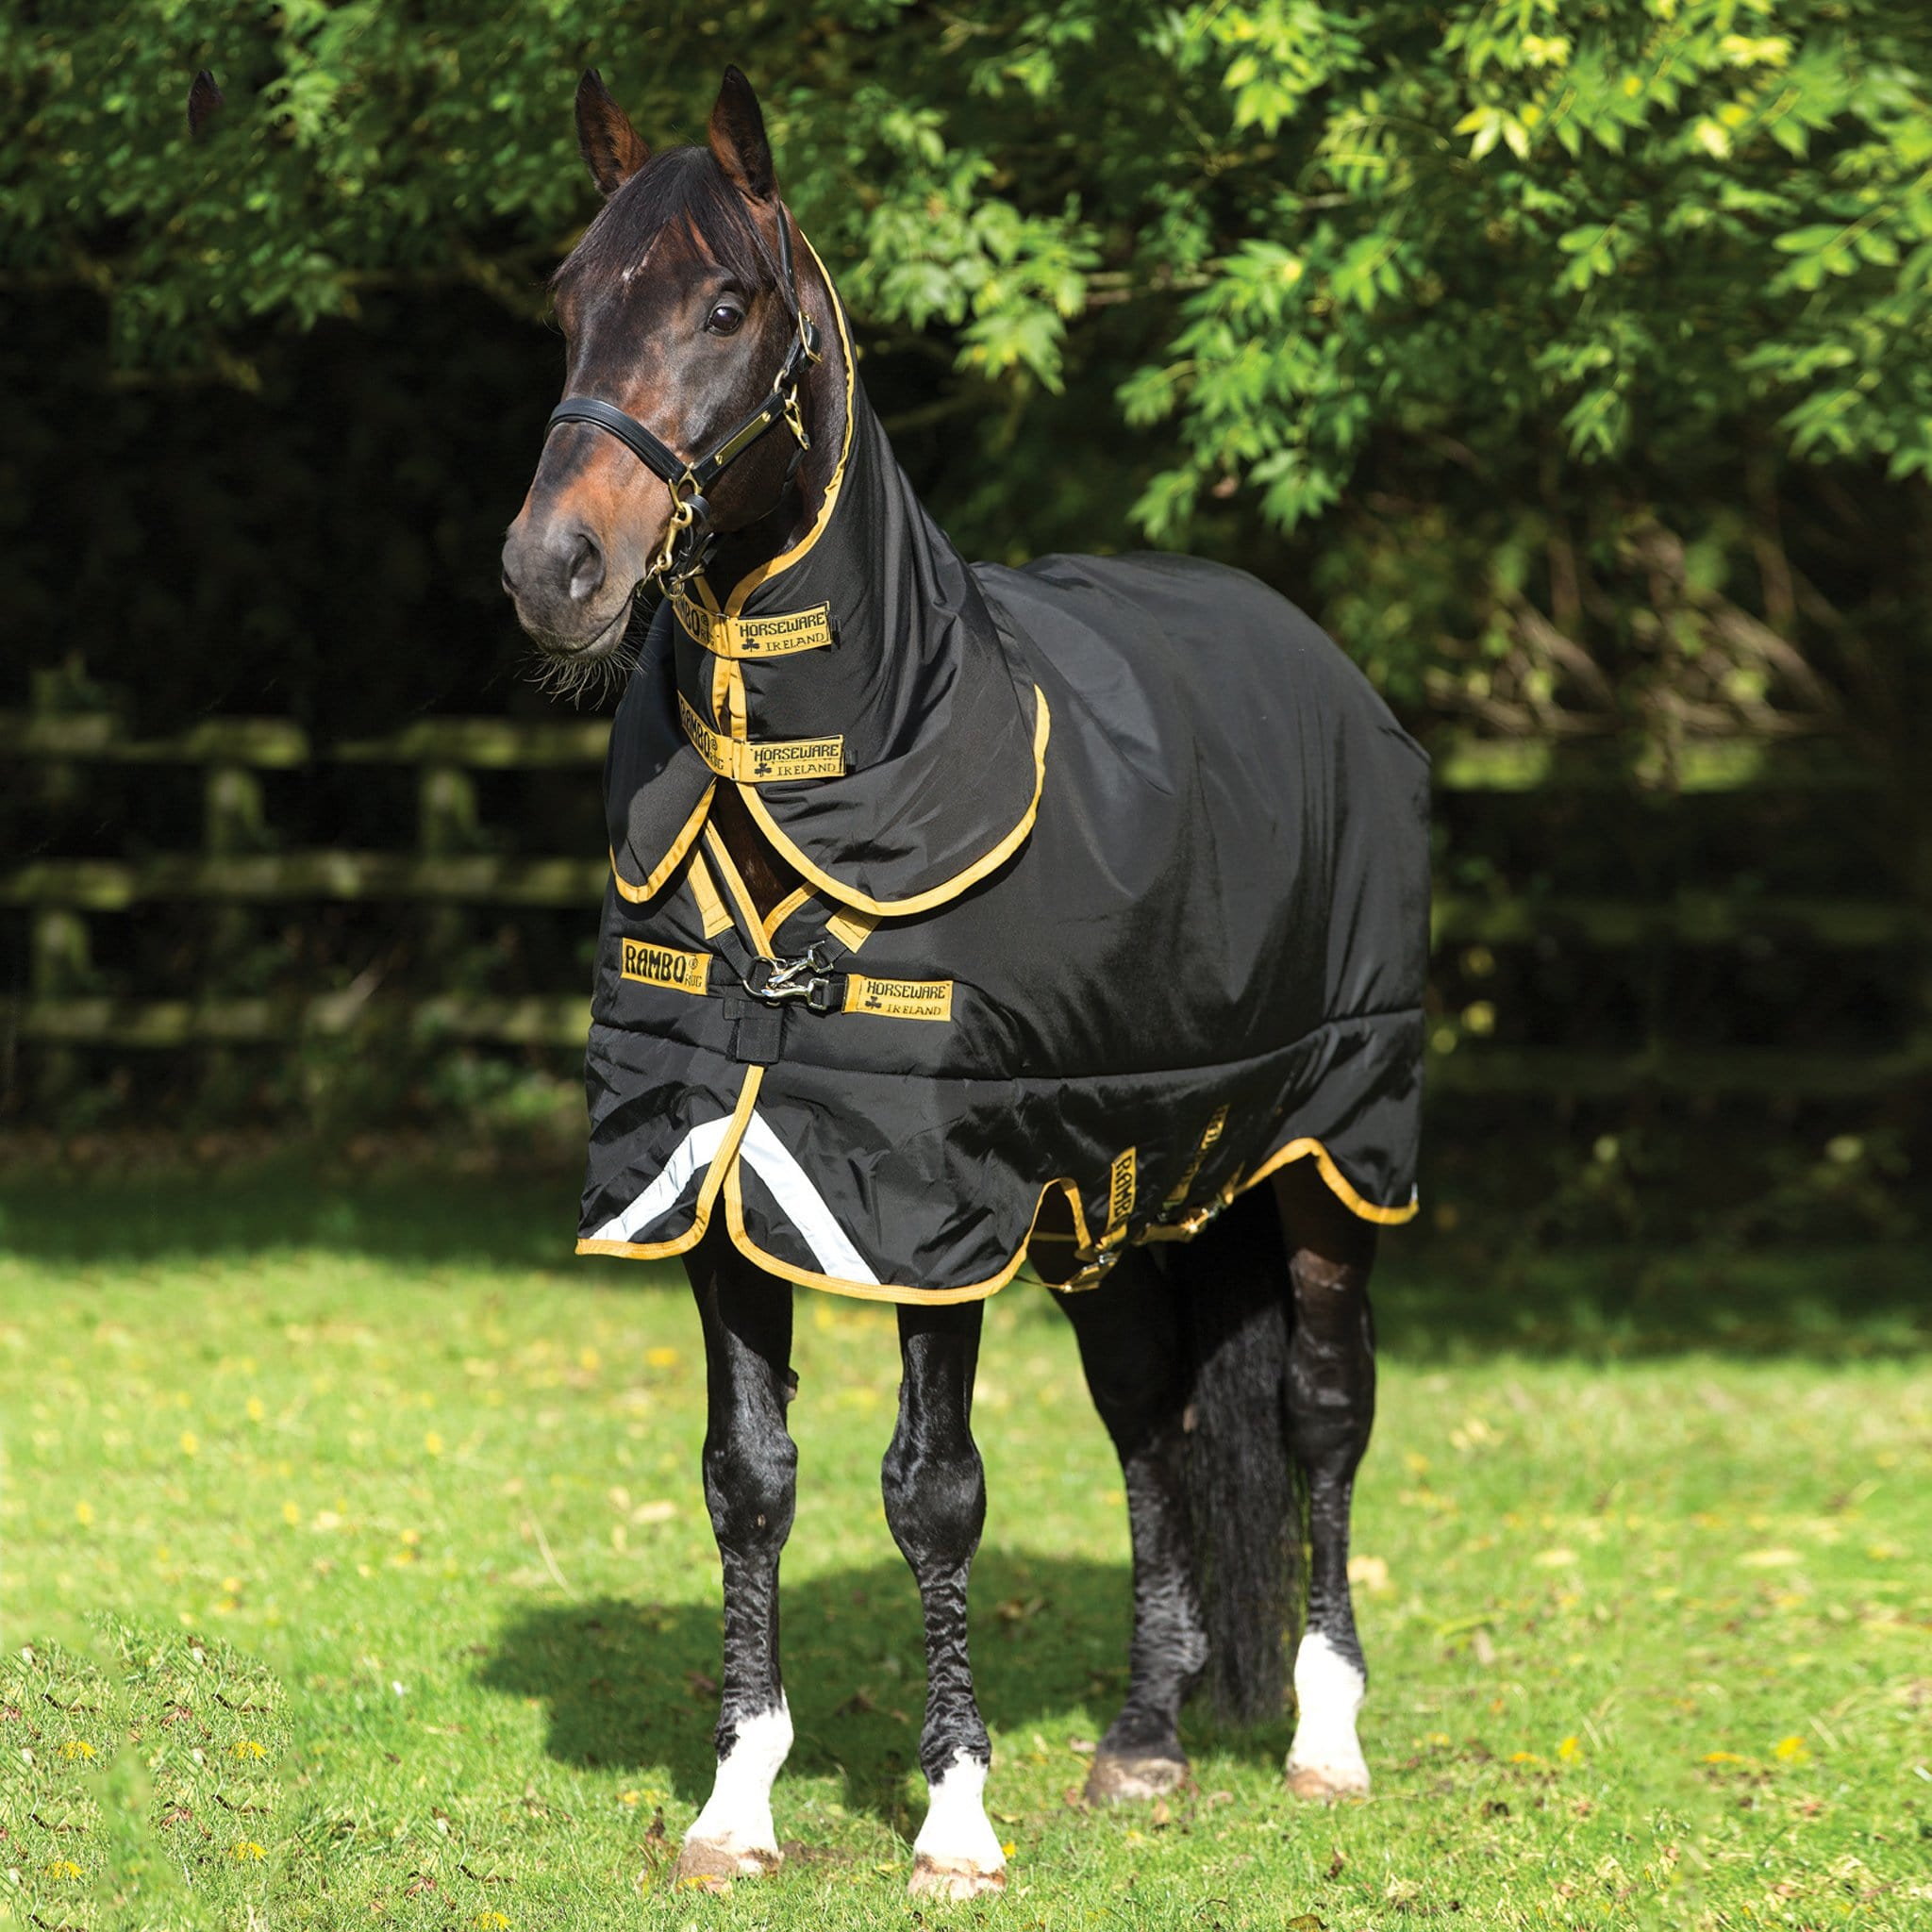 Horseware Rambo Supreme Heavy 420g Turnout Rug Black and Gold Front View AAAS93